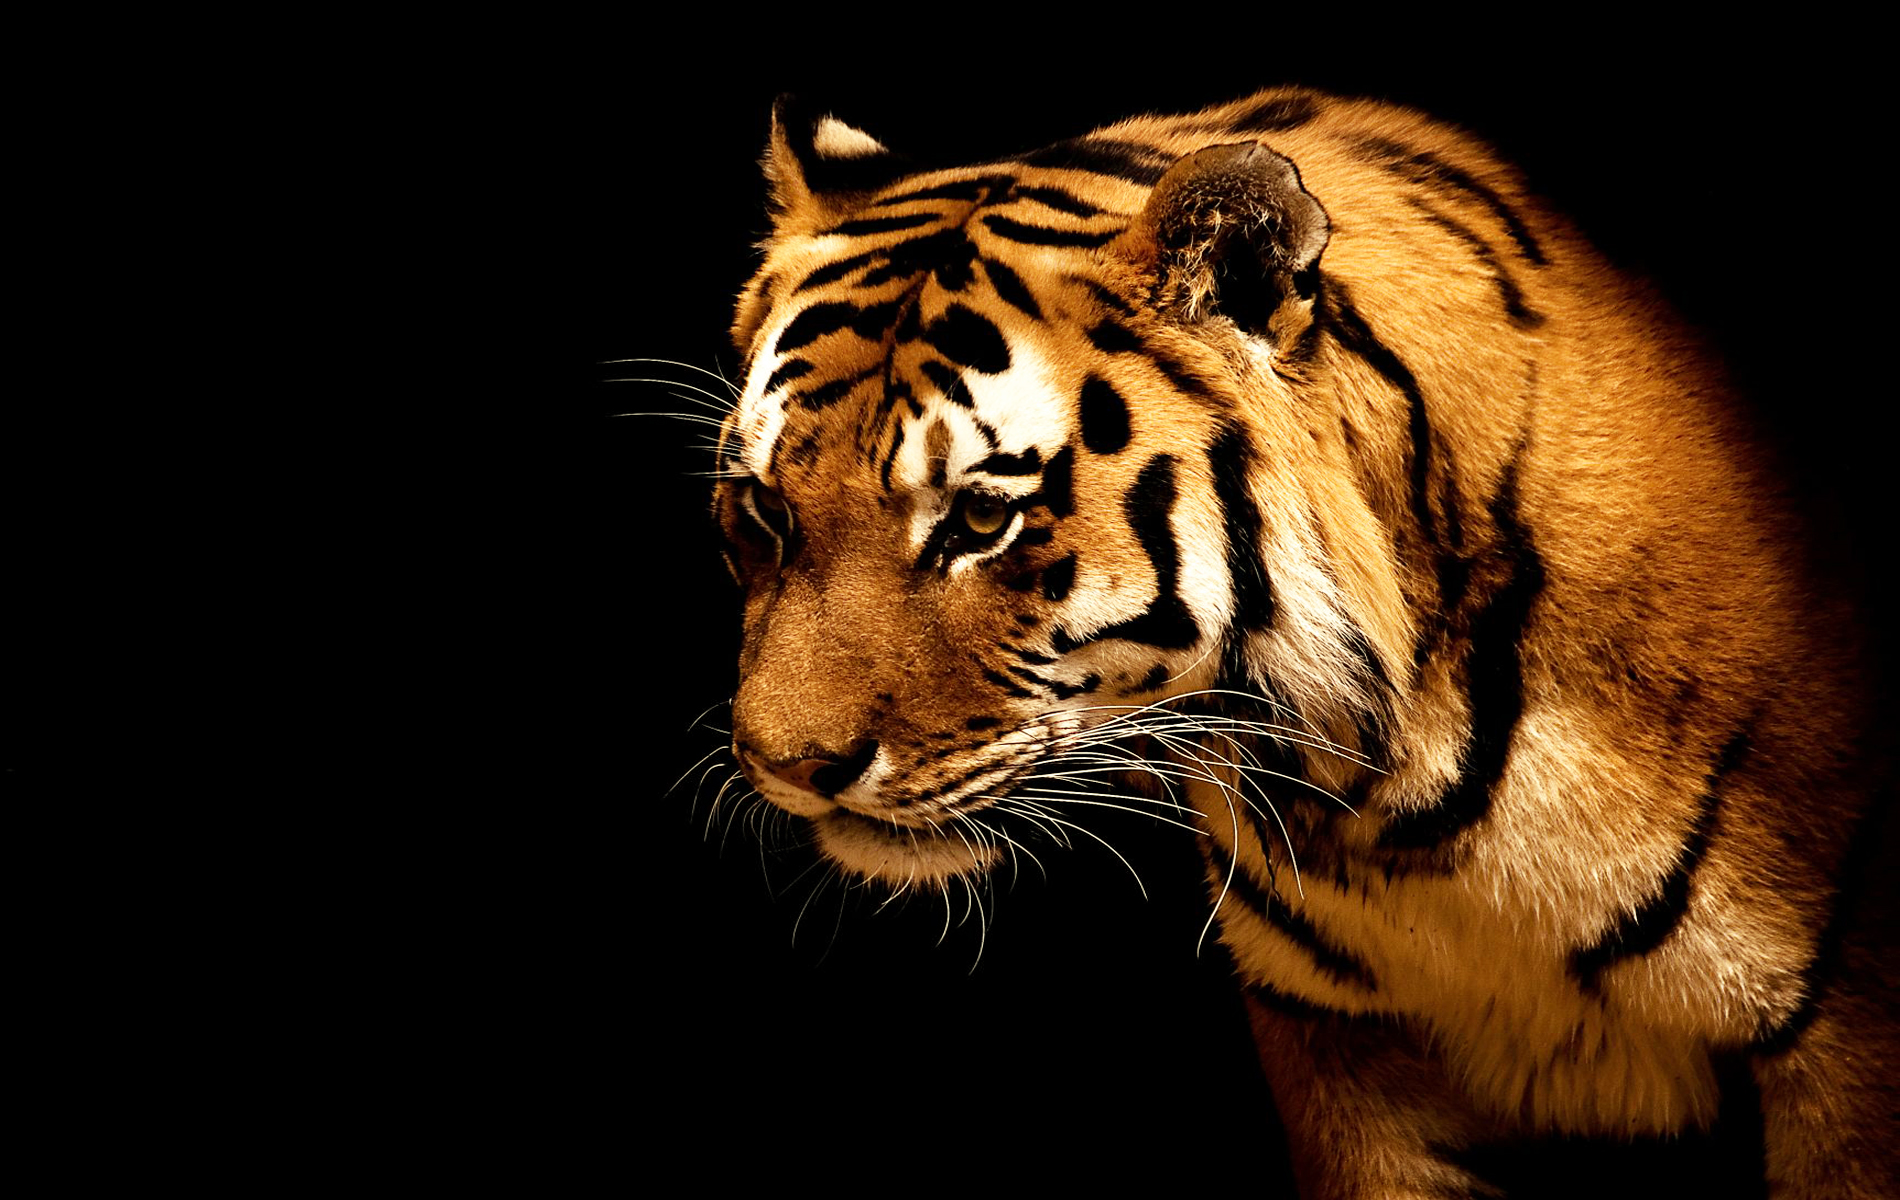 tiger wallpaper and background image | 1900x1200 | id:200522